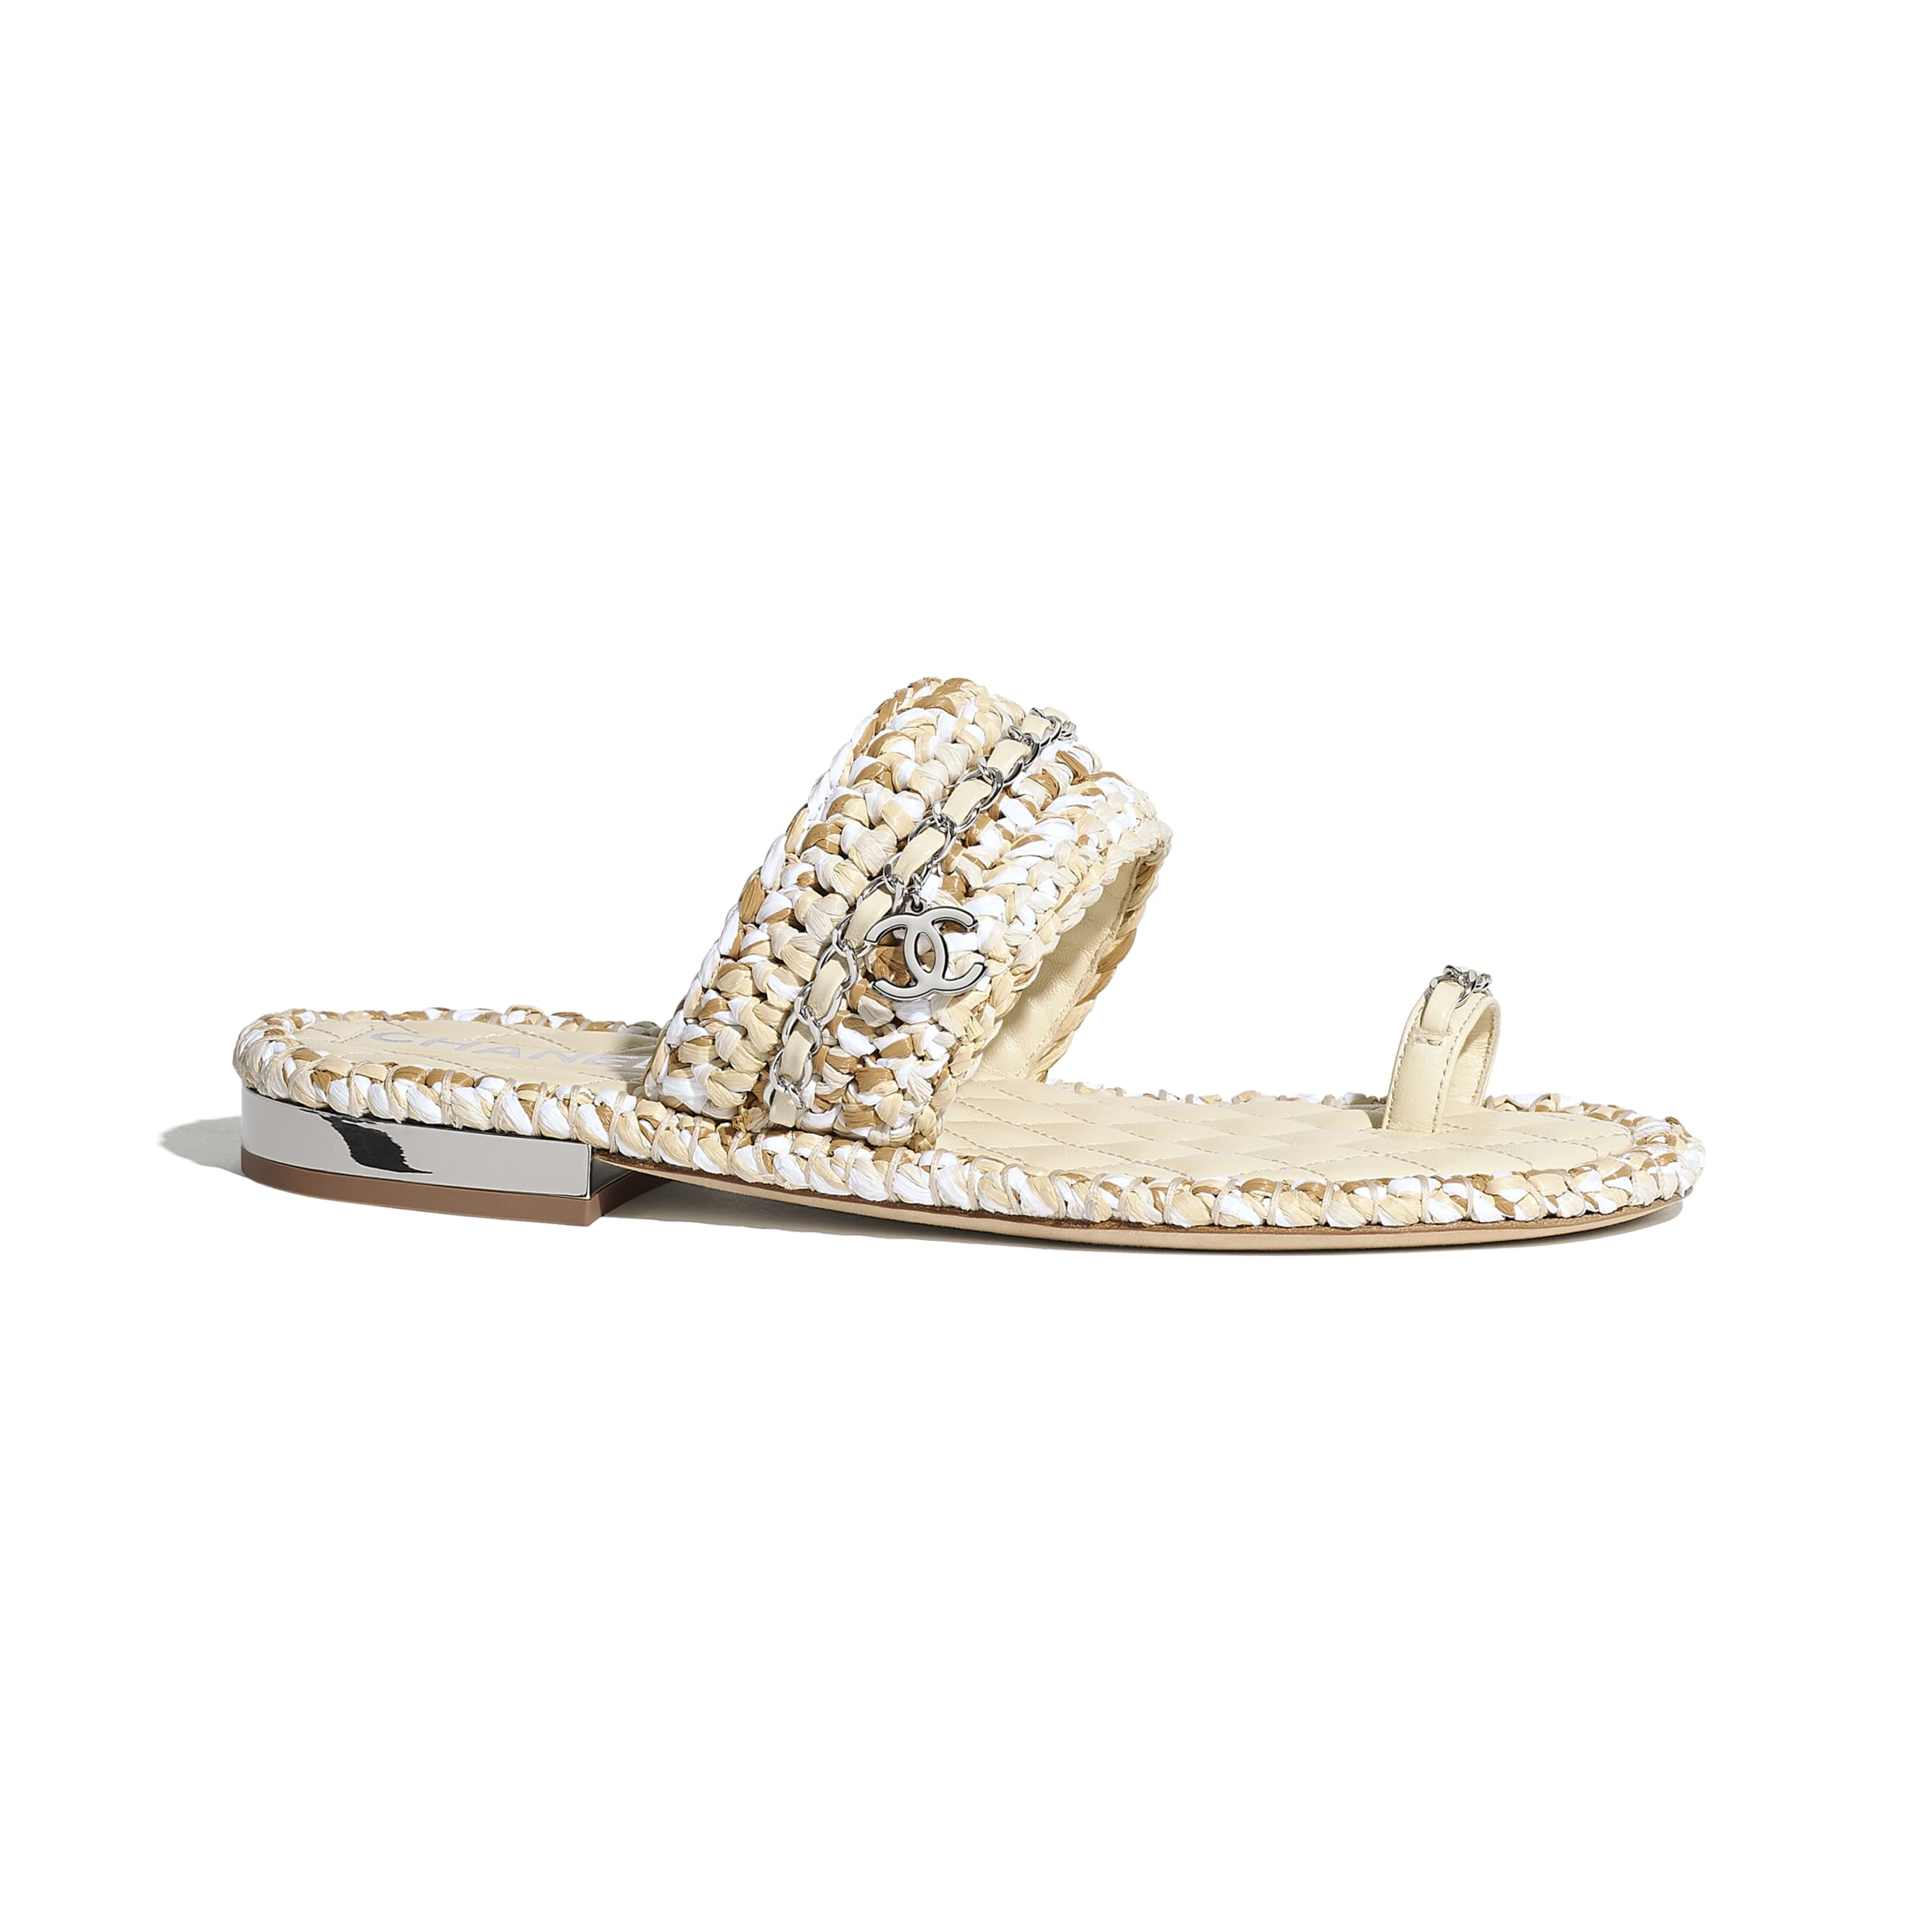 Sandals - Beige & White - Raffia & Lambskin - CHANEL - Default view - see standard sized version